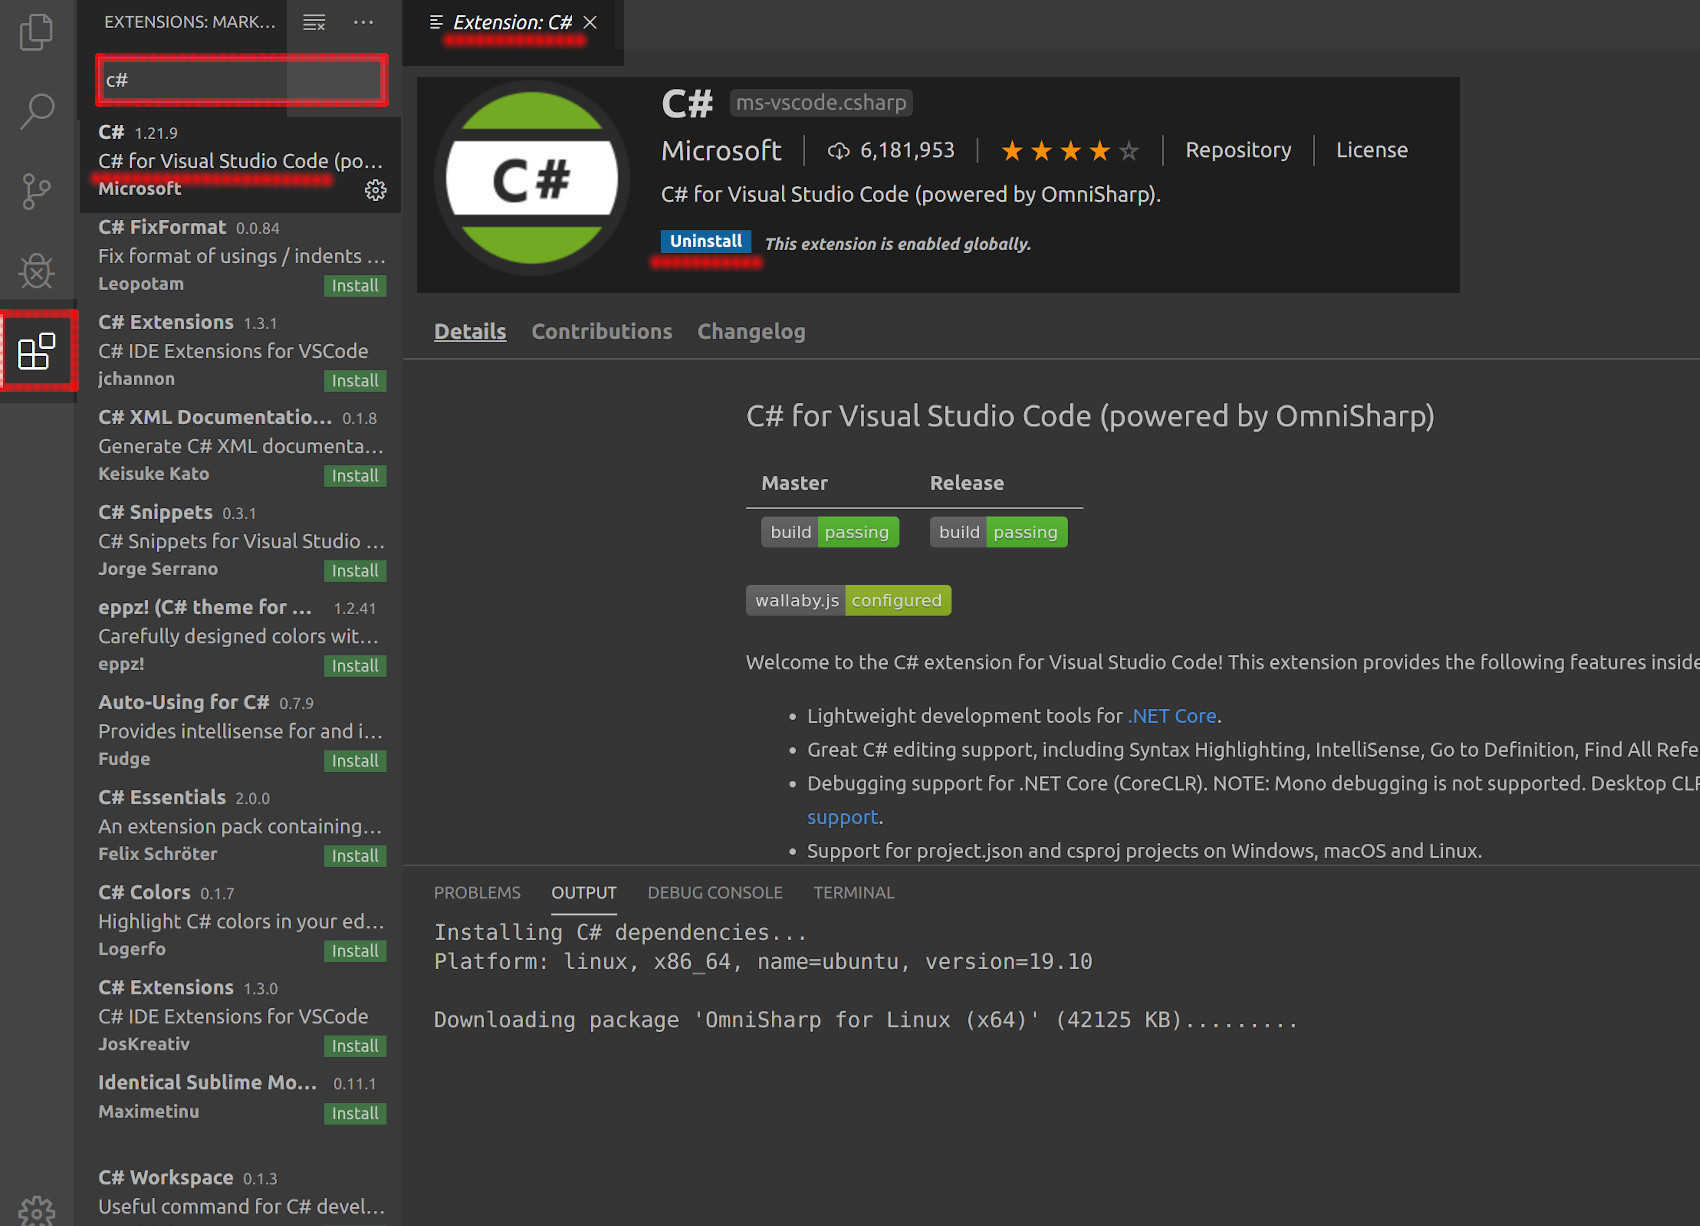 Screenshot of the Visual Studio Code Extension Marketplace installing the C# extension